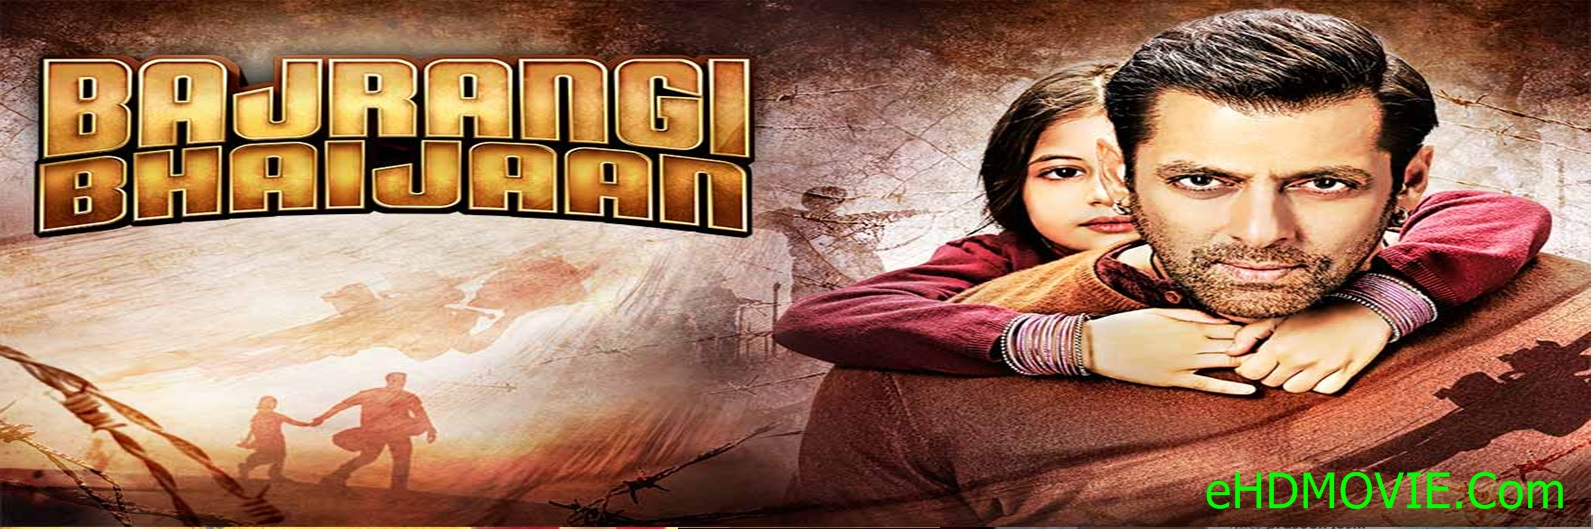 Bajrangi Bhaijaan 2015 Full Movie Hindi 720p - 480p ORG BRRip 600MB - 1.4GB ESubs Free Download